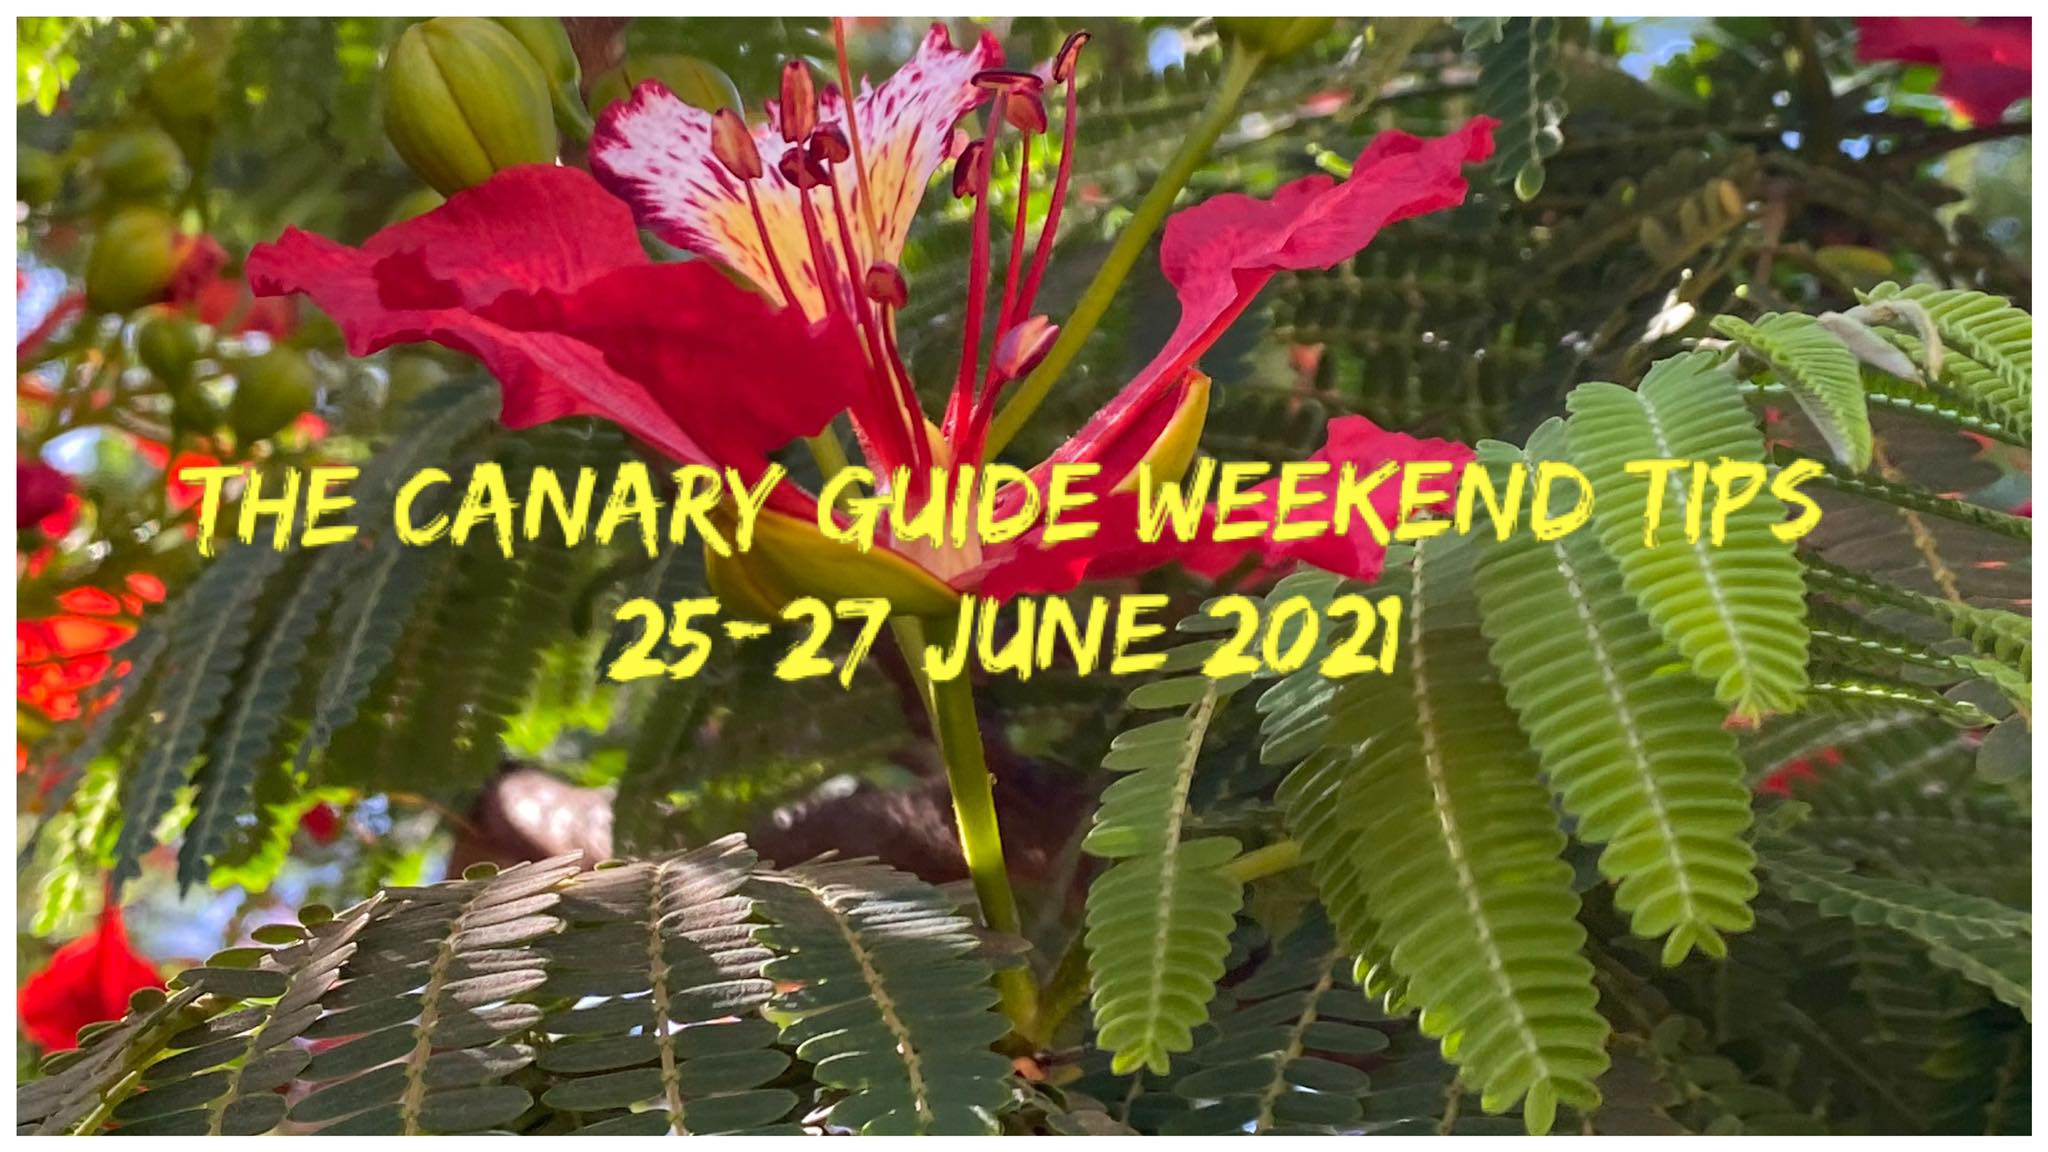 The Canary Guide Weekend Tips 25-27 June 2021